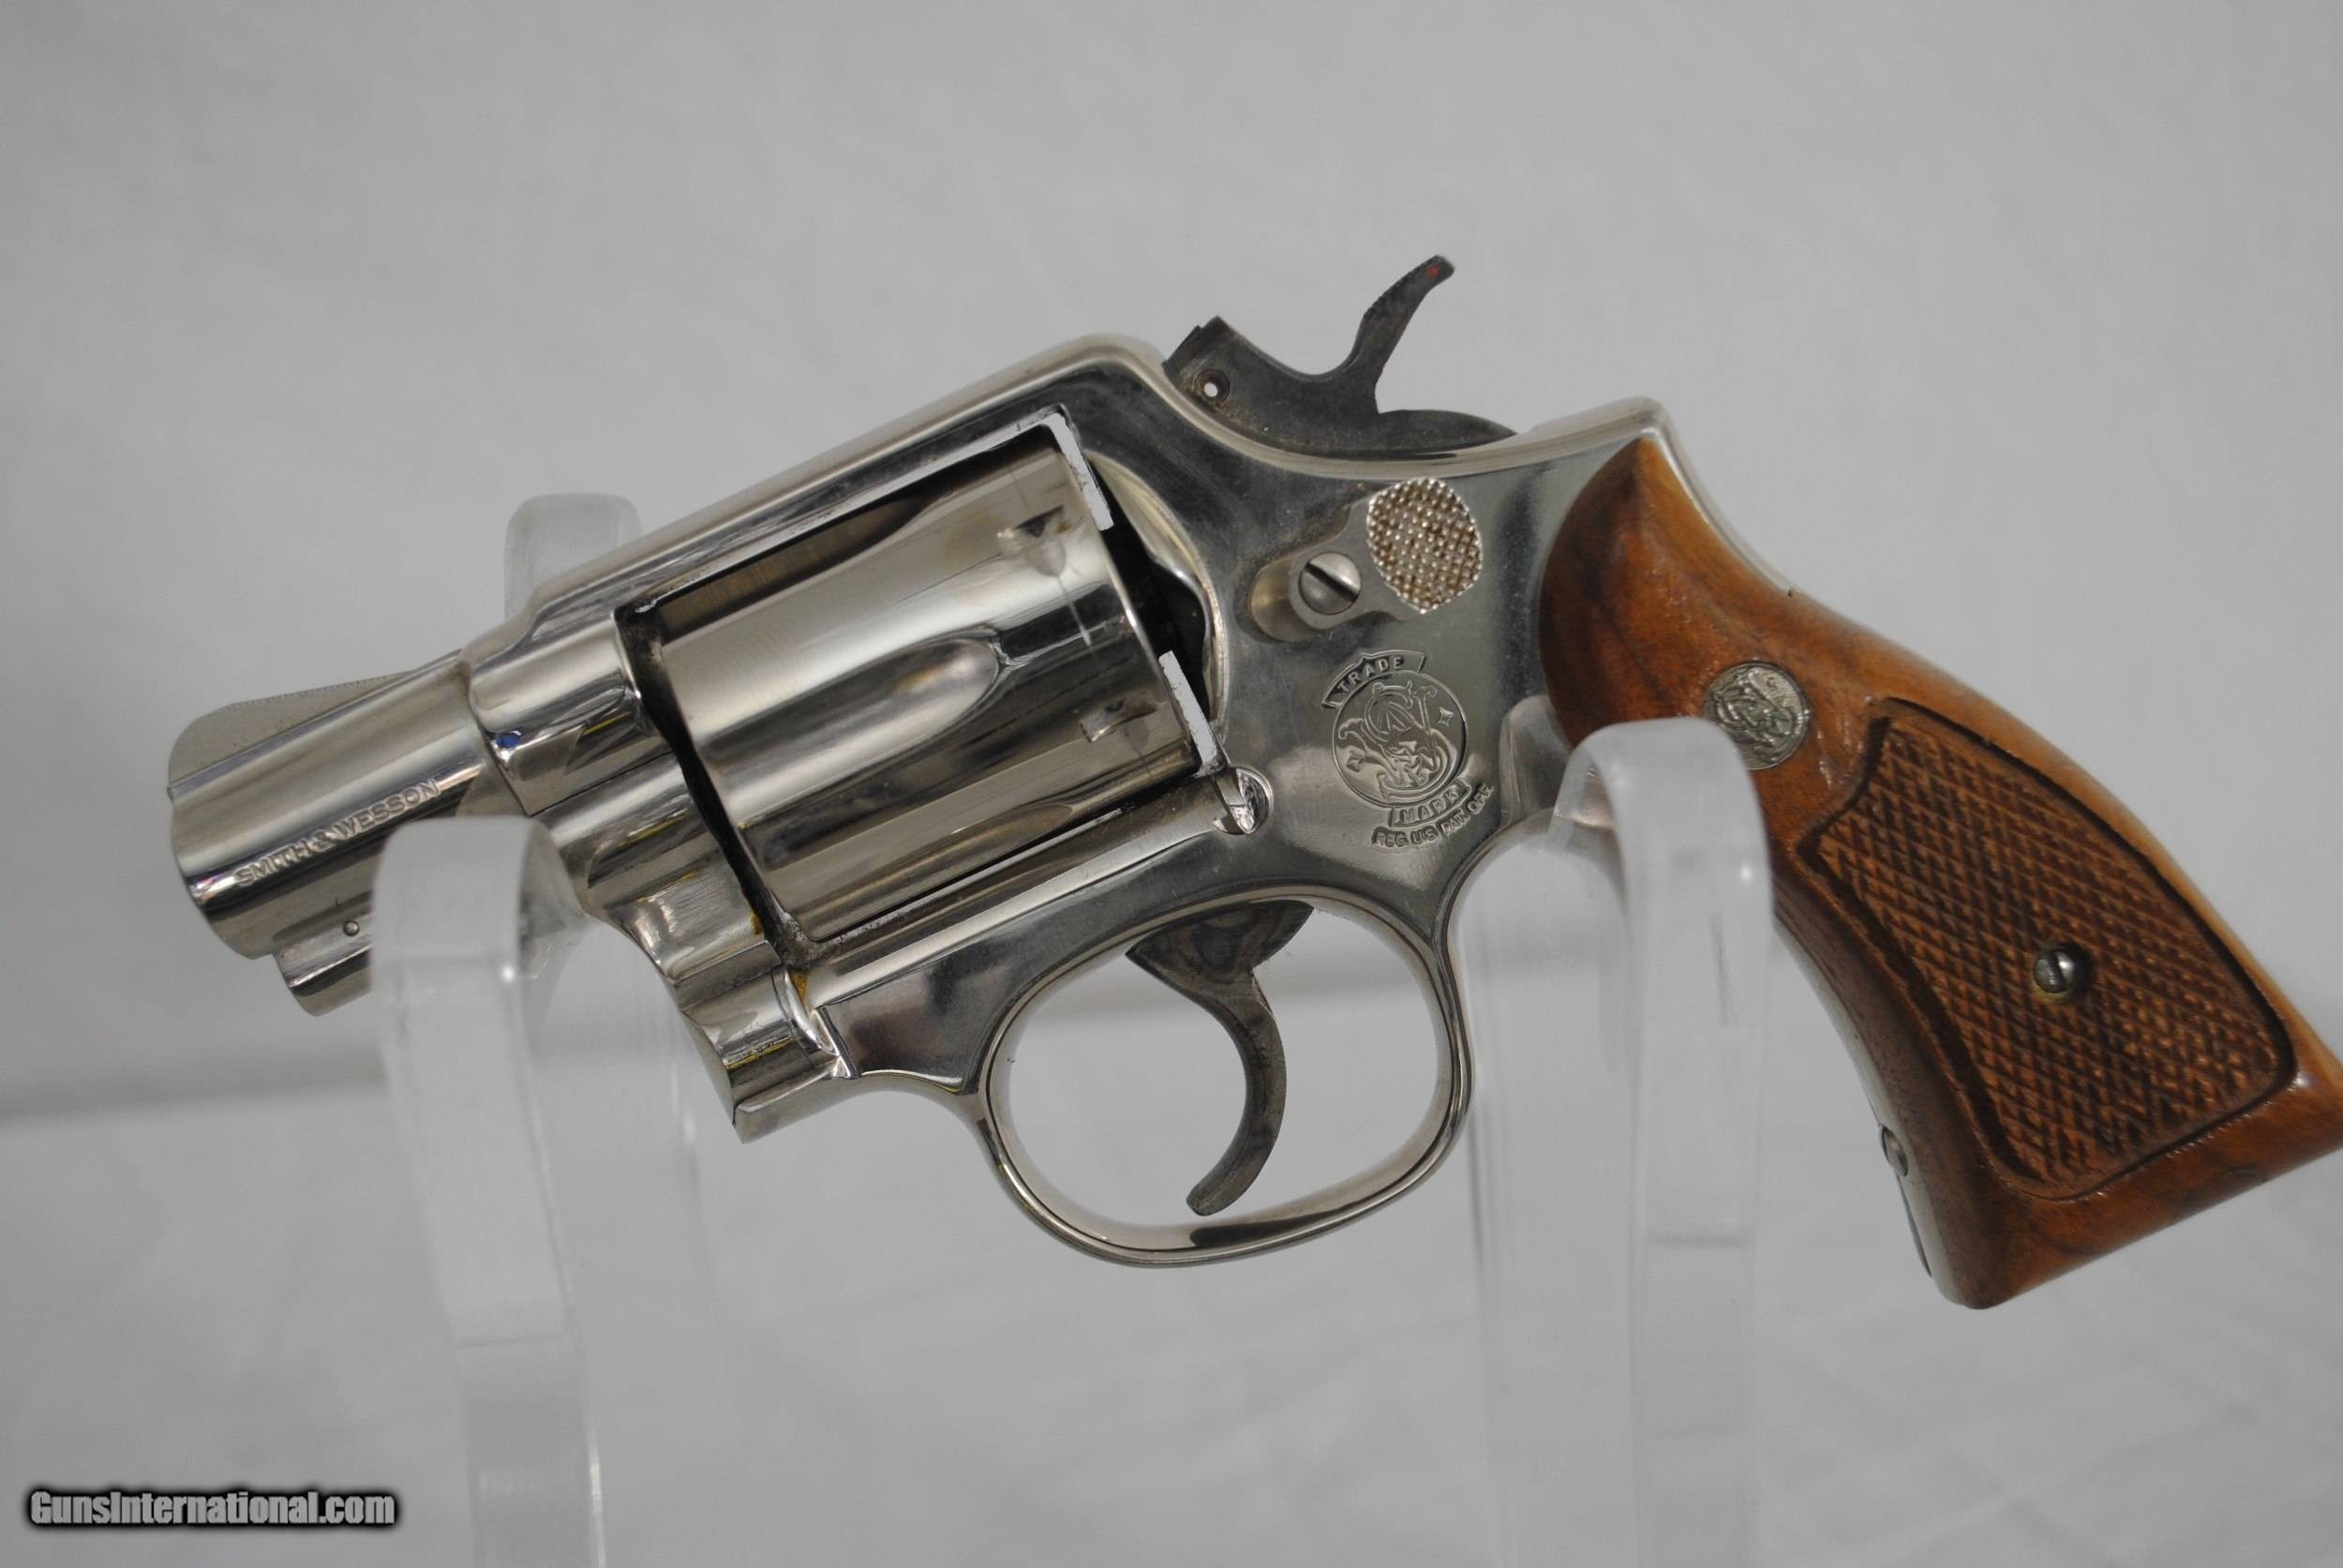 Smith & wesson model 10 — wikipedia republished // wiki 2